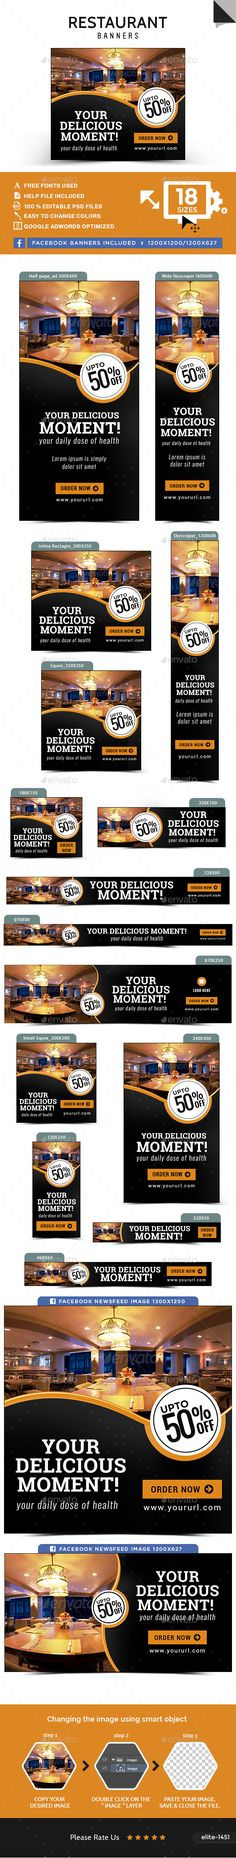 Restaurant Banners — Photoshop PSD #business #Google adwords banner • Available here → https://graphicriver.net/item/restaurant-banners/15995926?ref=pxcr